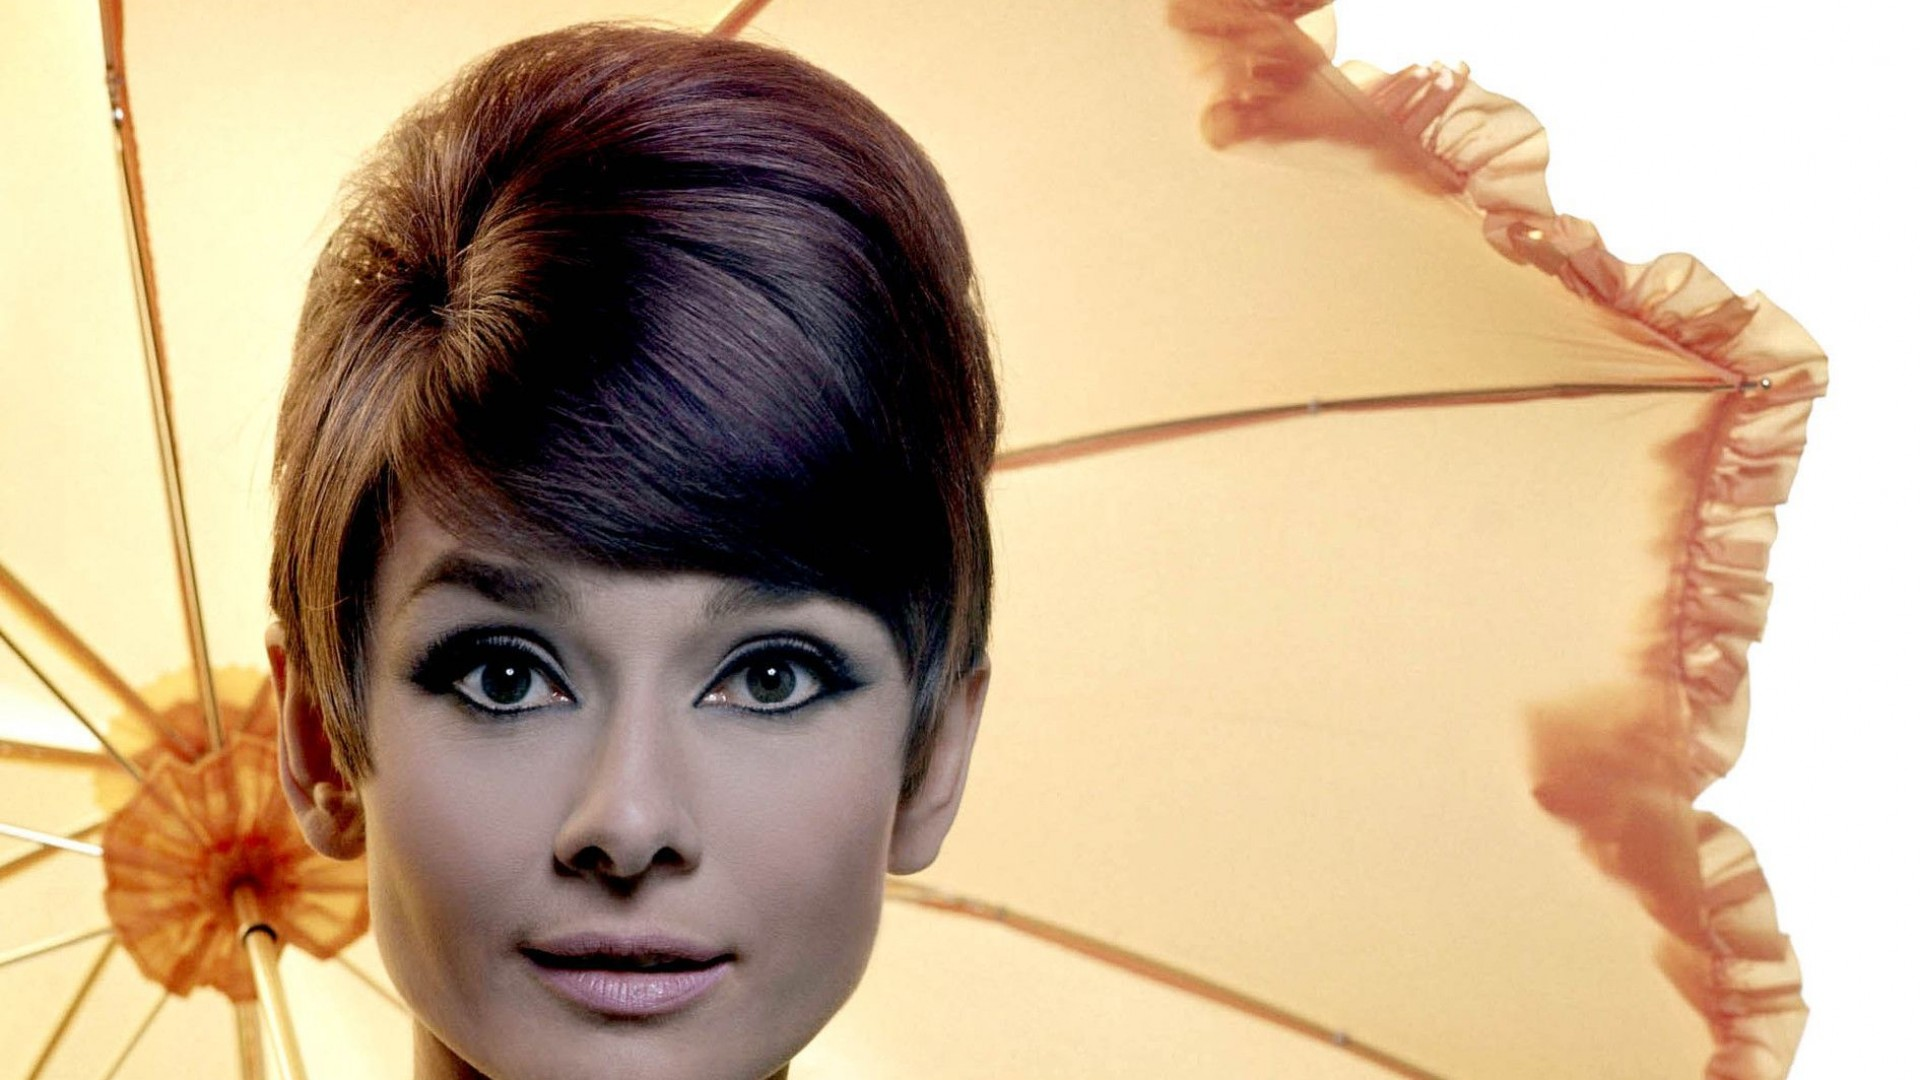 Audrey Hepburn Desktop Backgrounds   Wallpaper High Definition High 1920x1080